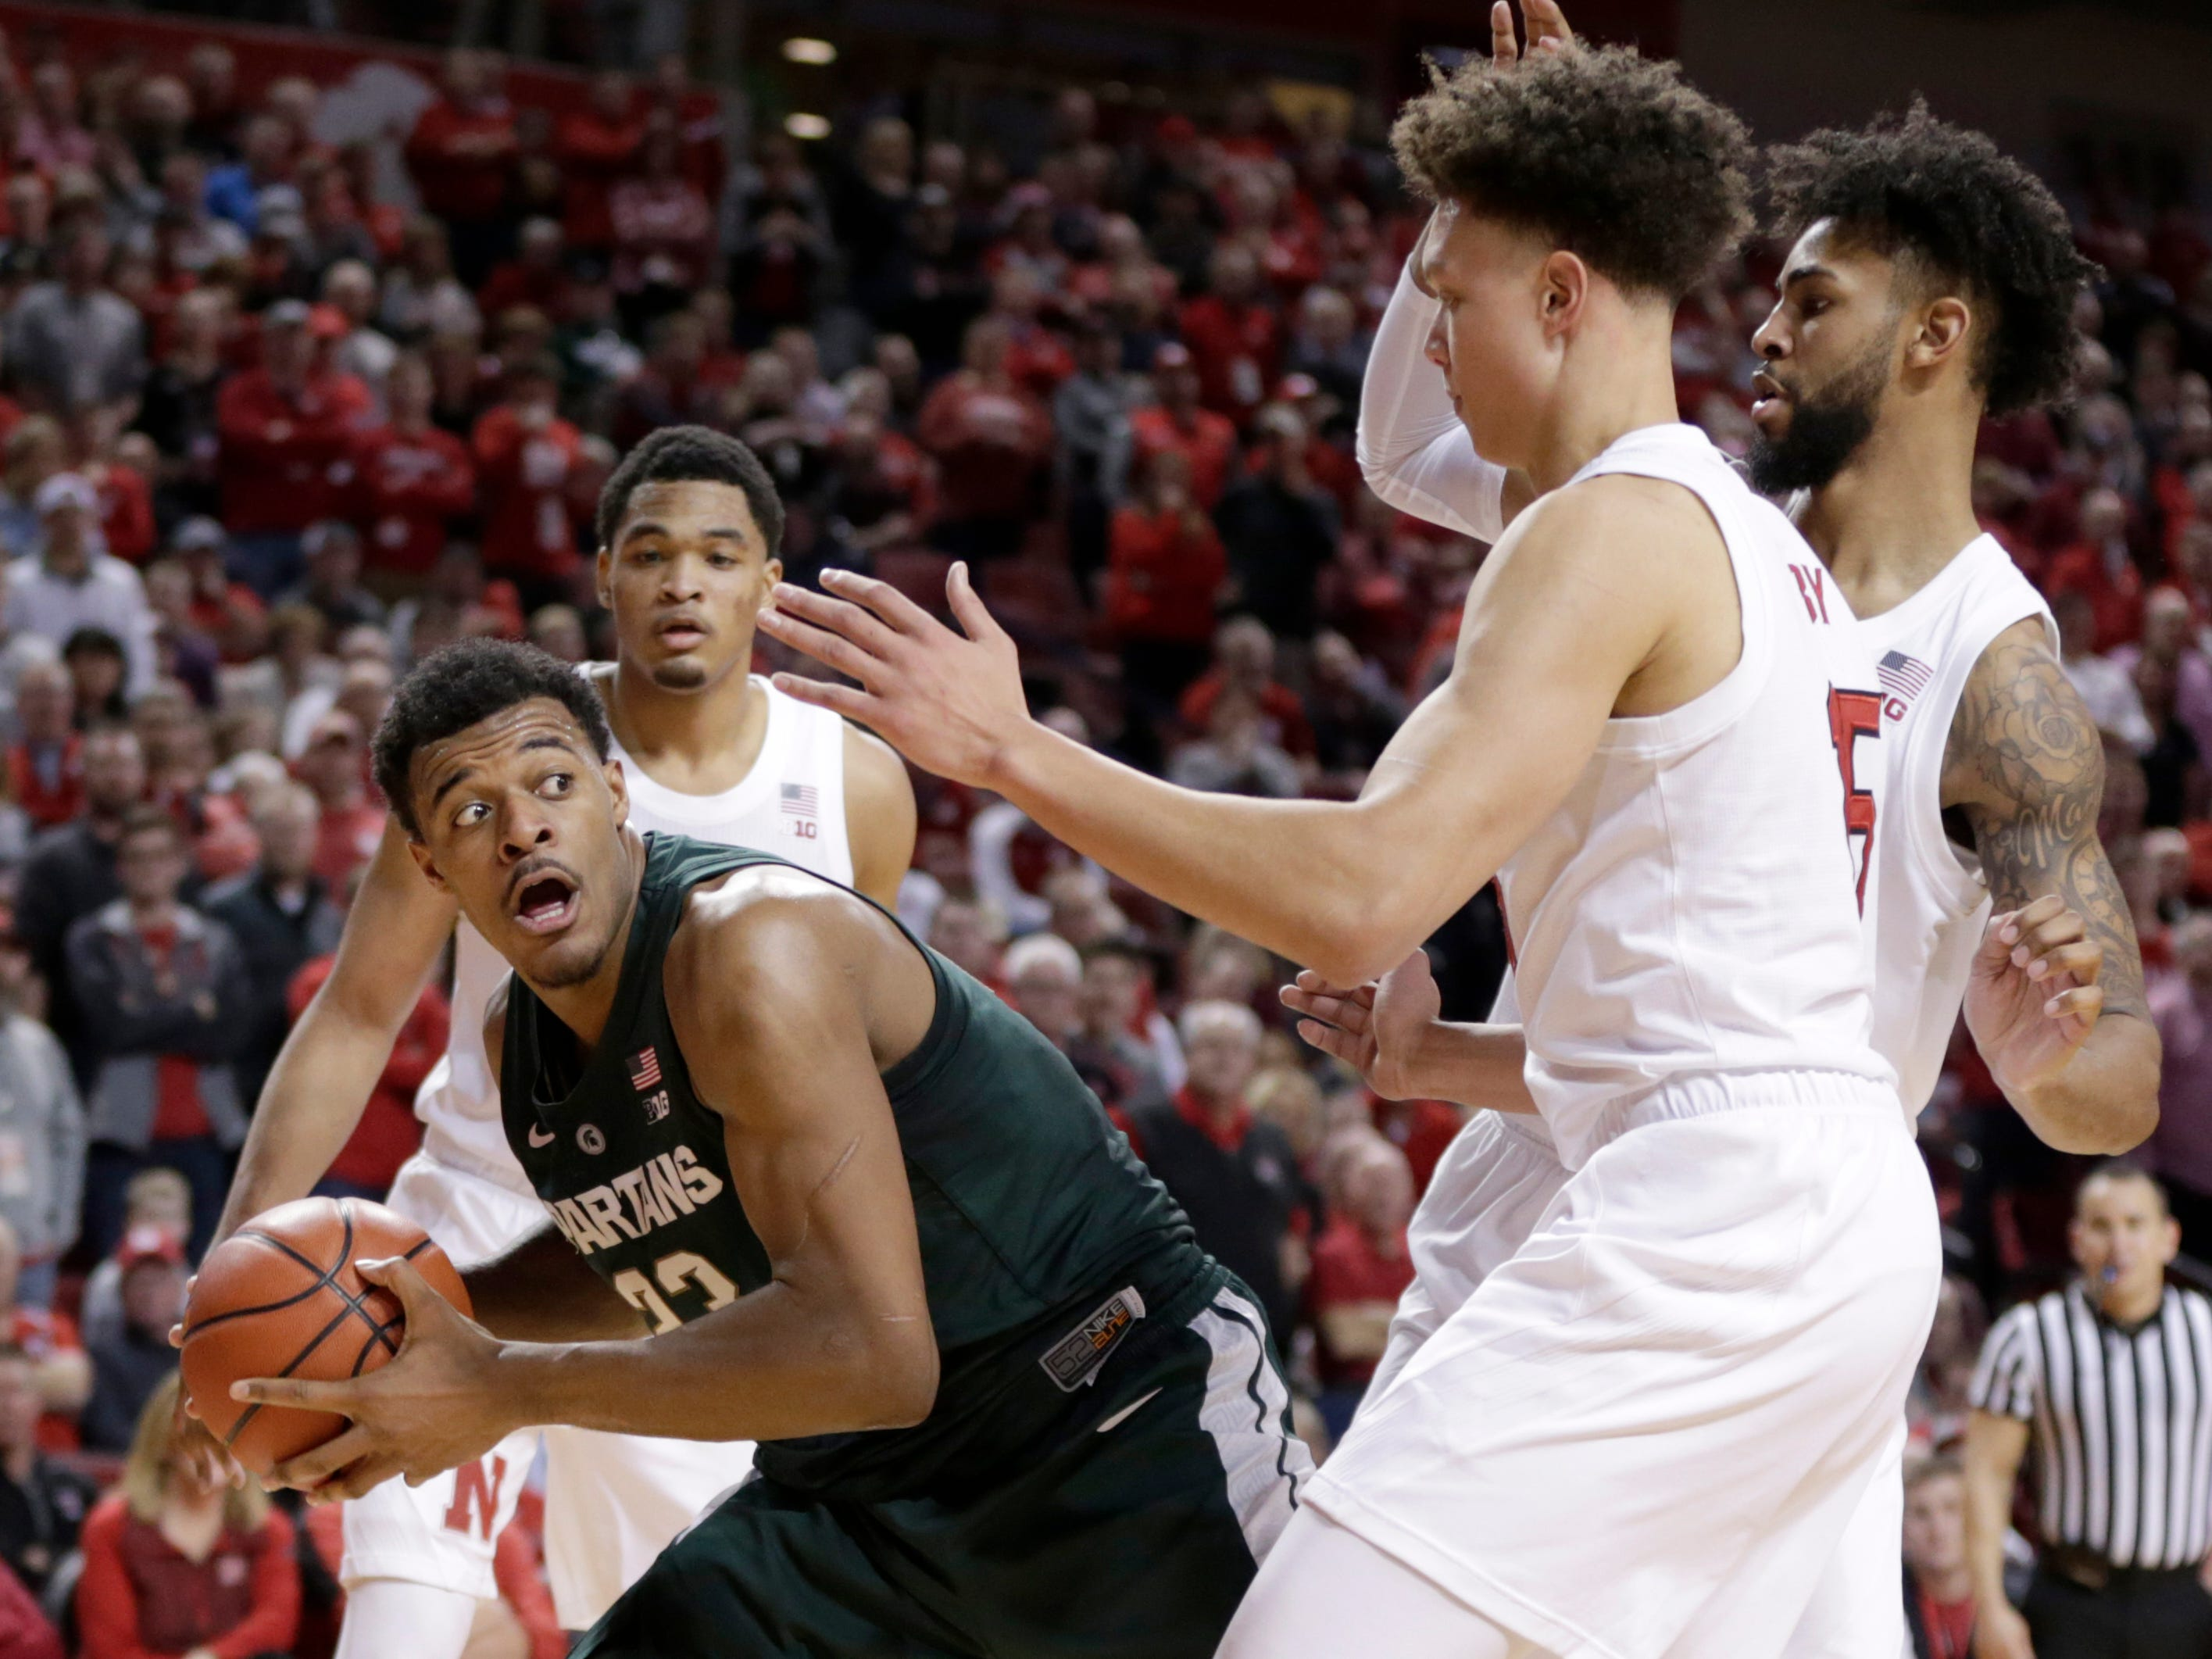 Michigan State's Xavier Tillman (23) looks to pass the ball against Nebraska's James Palmer Jr., left rear, Isaac Copeland Jr., right rear, and Isaiah Roby, right, during the second half of an NCAA college basketball game in Lincoln, Neb., Thursday, Jan. 17, 2019. Michigan State won 70-64.